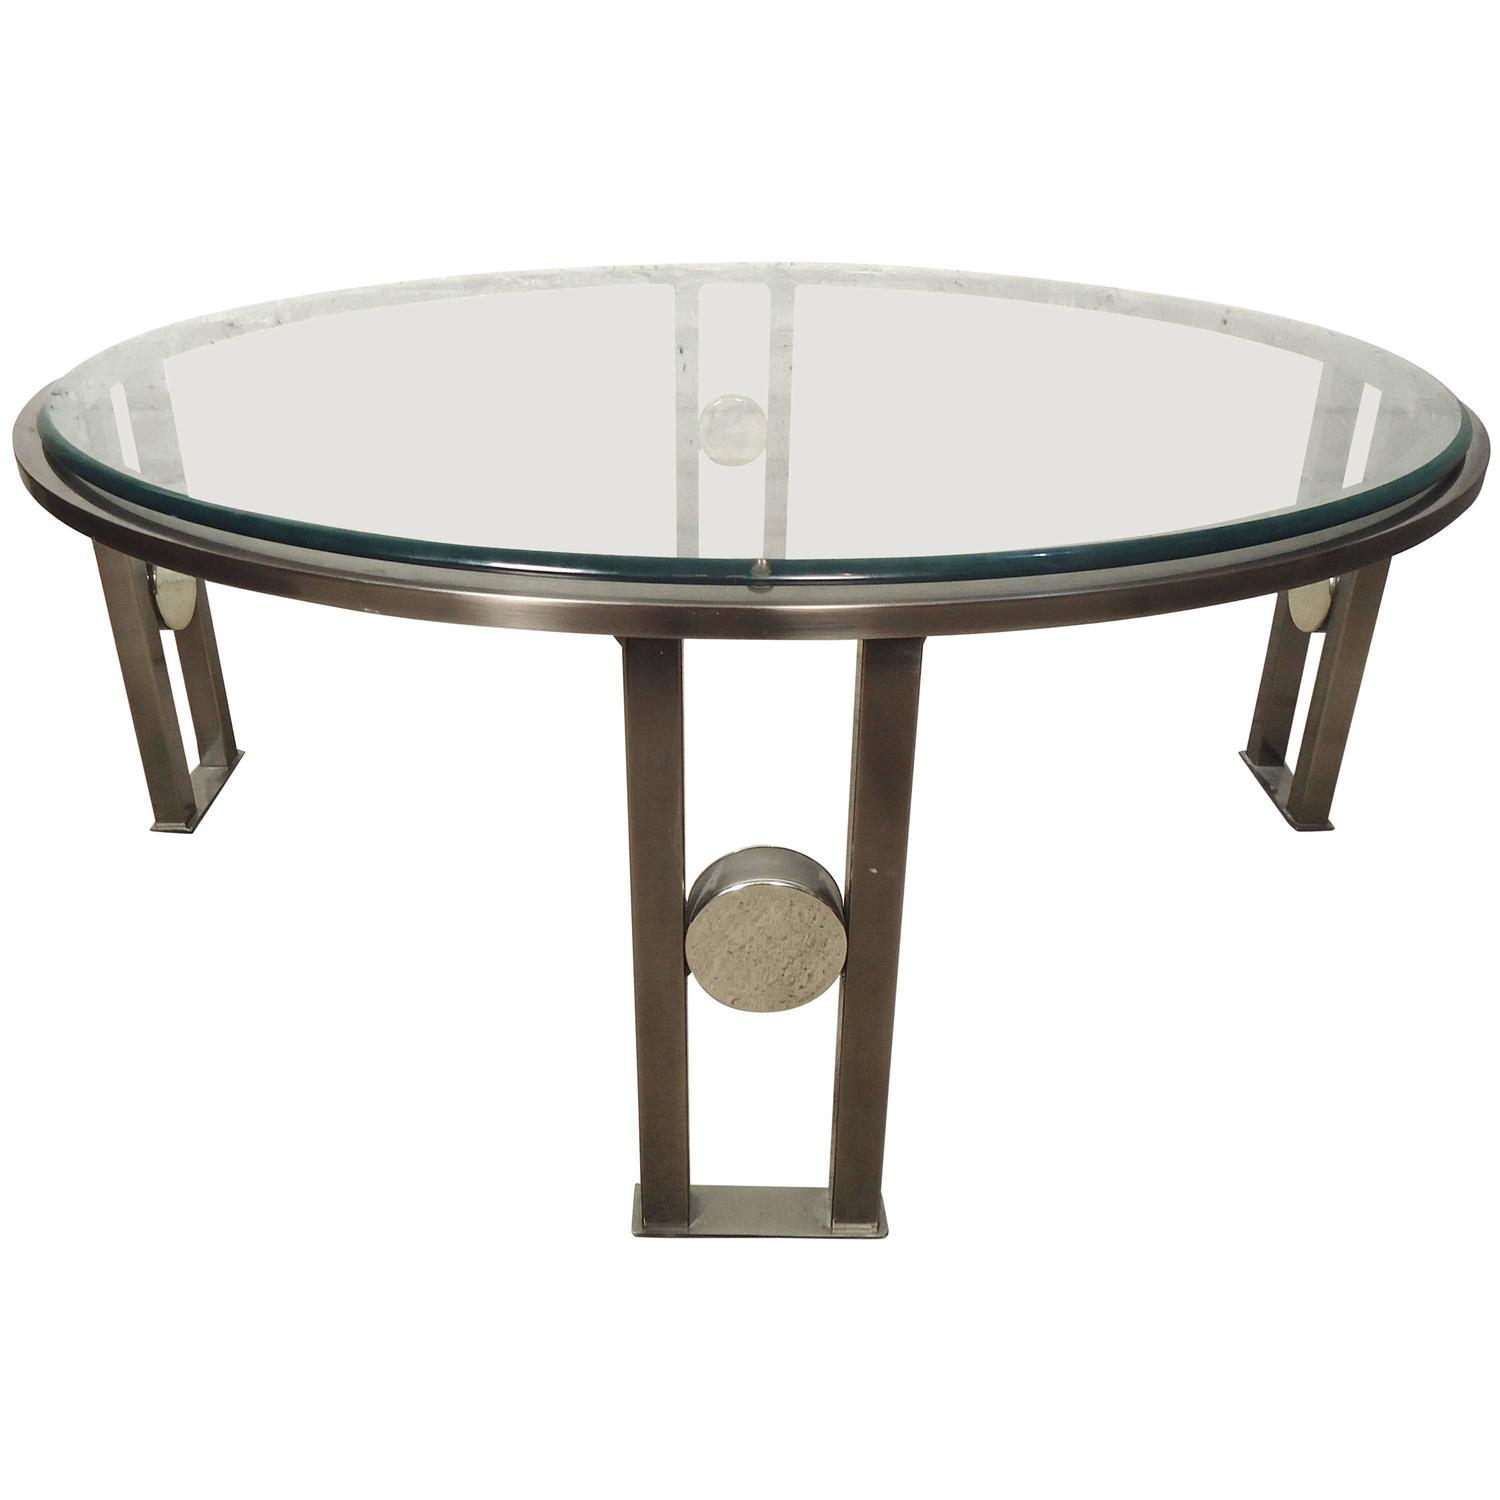 Round glass top coffee table at 1stdibs Glass top for coffee table